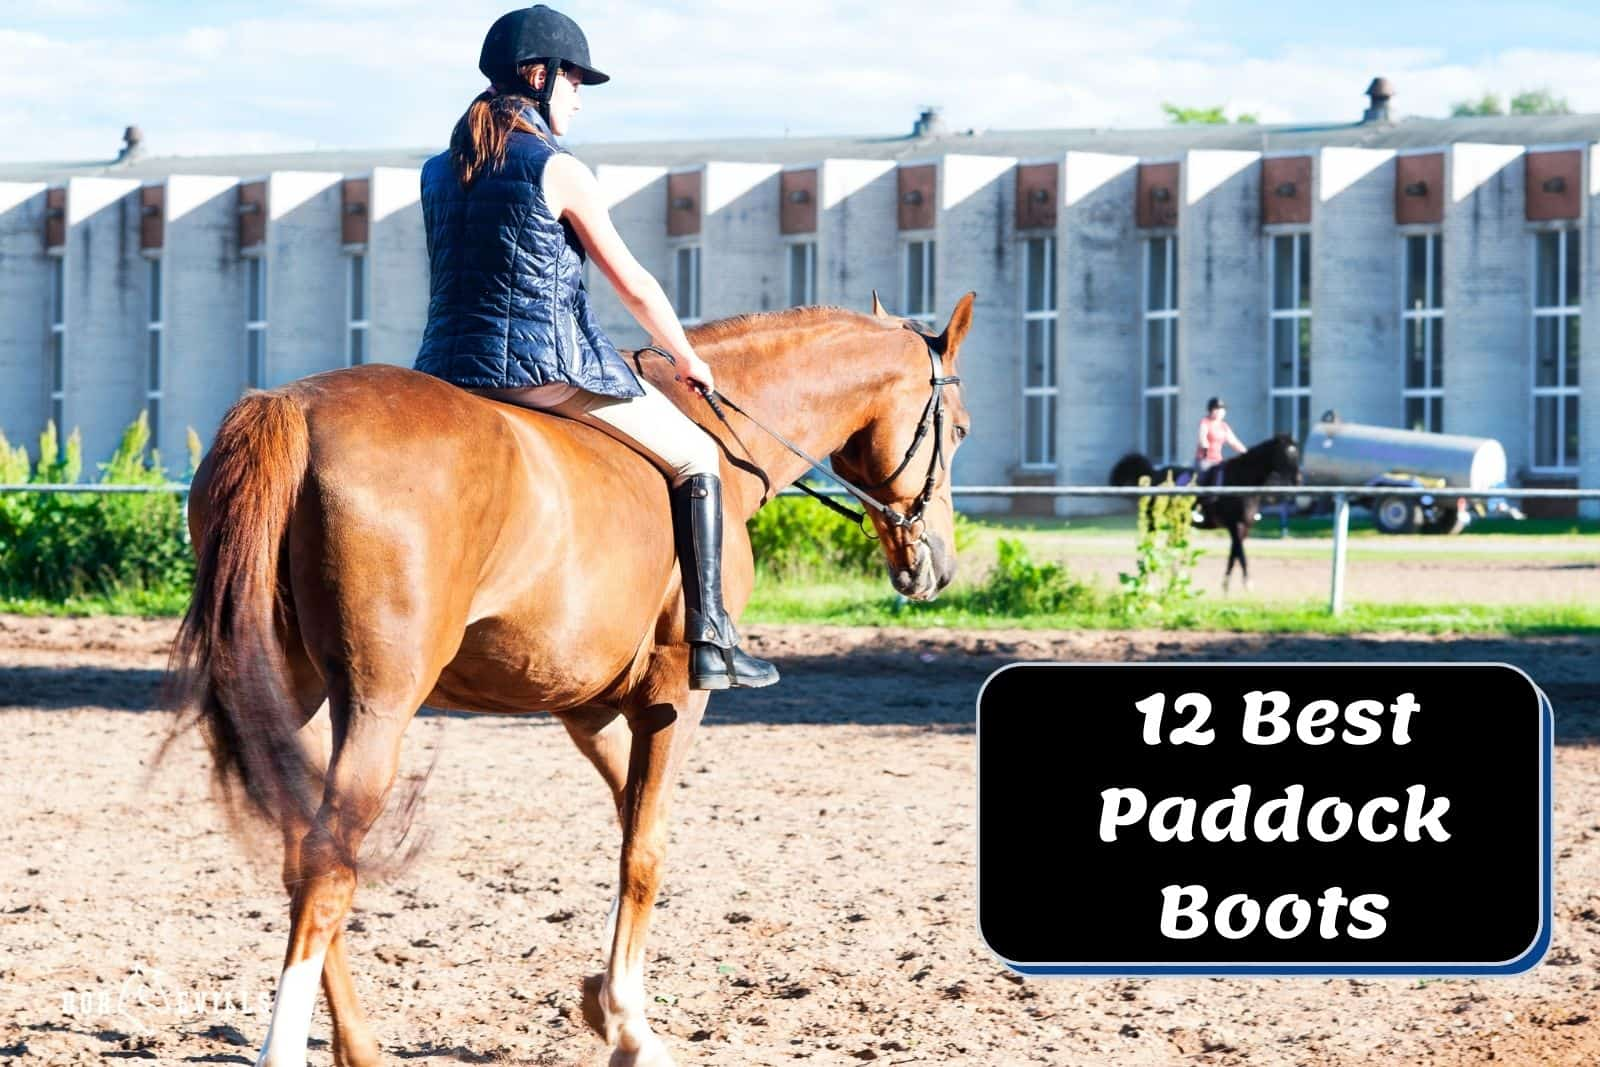 equestrian lady using her best paddock boots while riding a horse